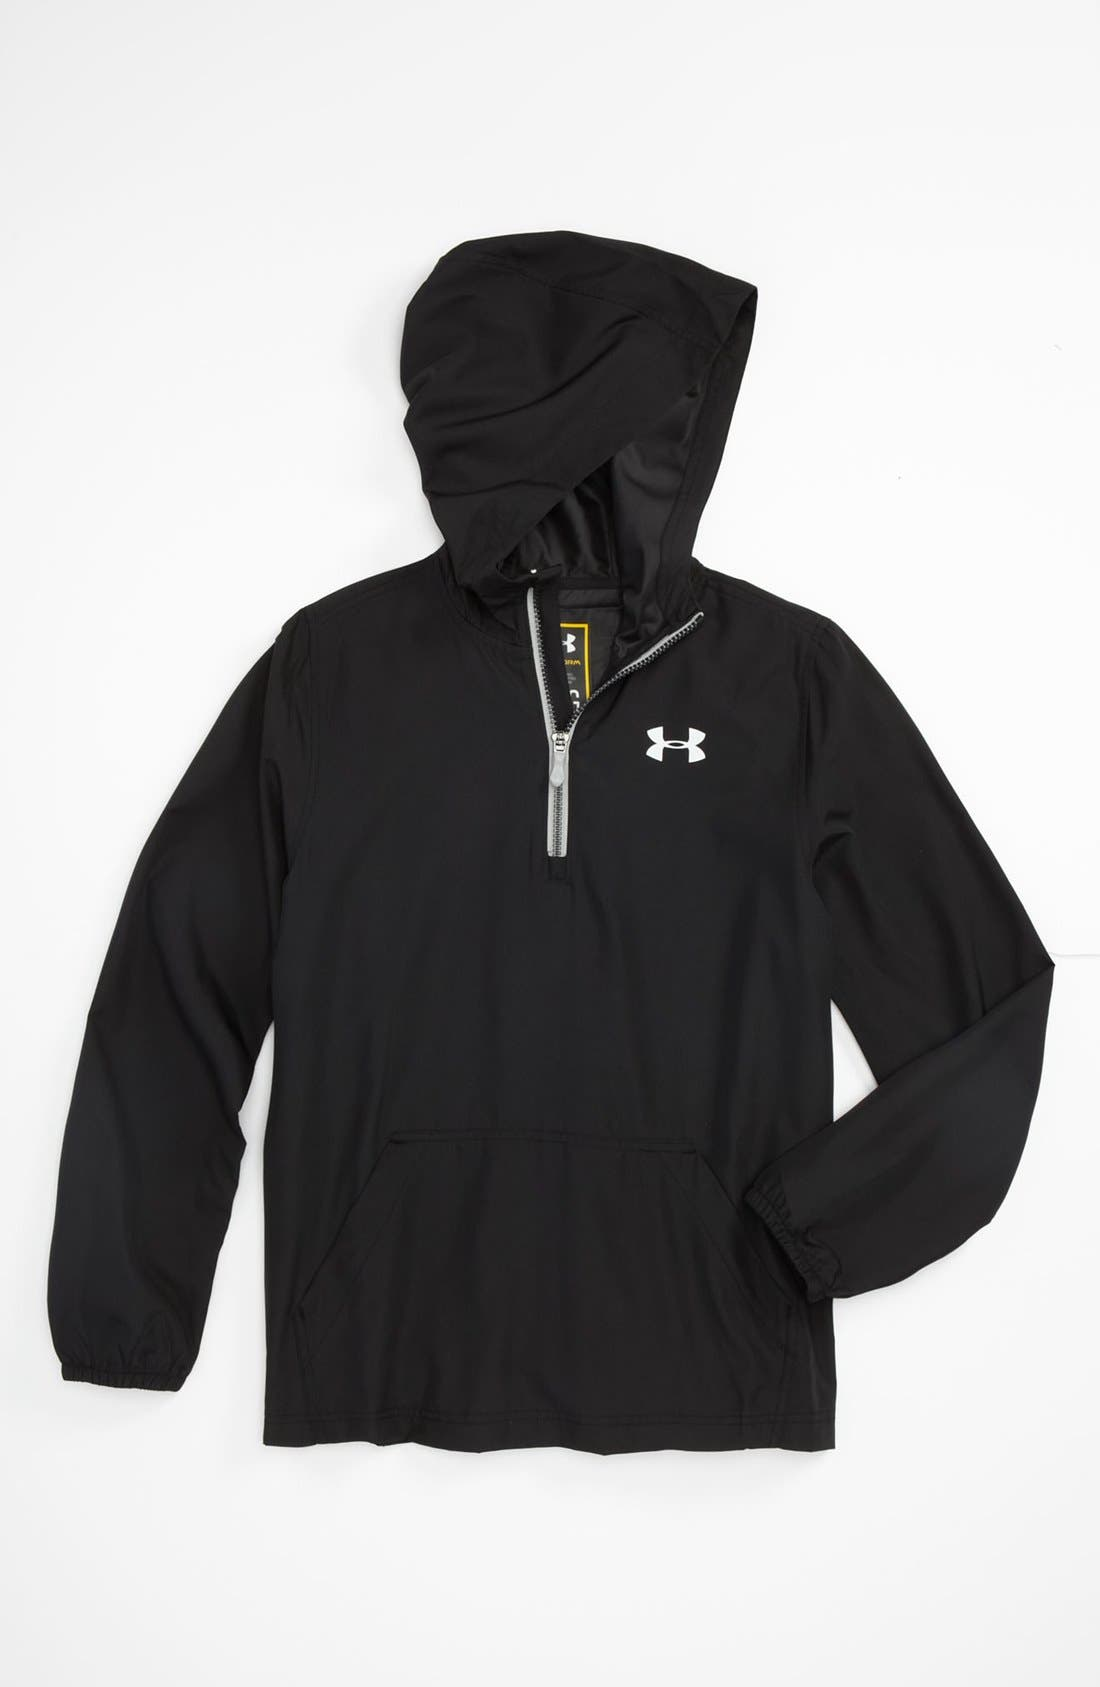 Main Image - Under Armour 'Droplets' Hoodie (Big Boys)